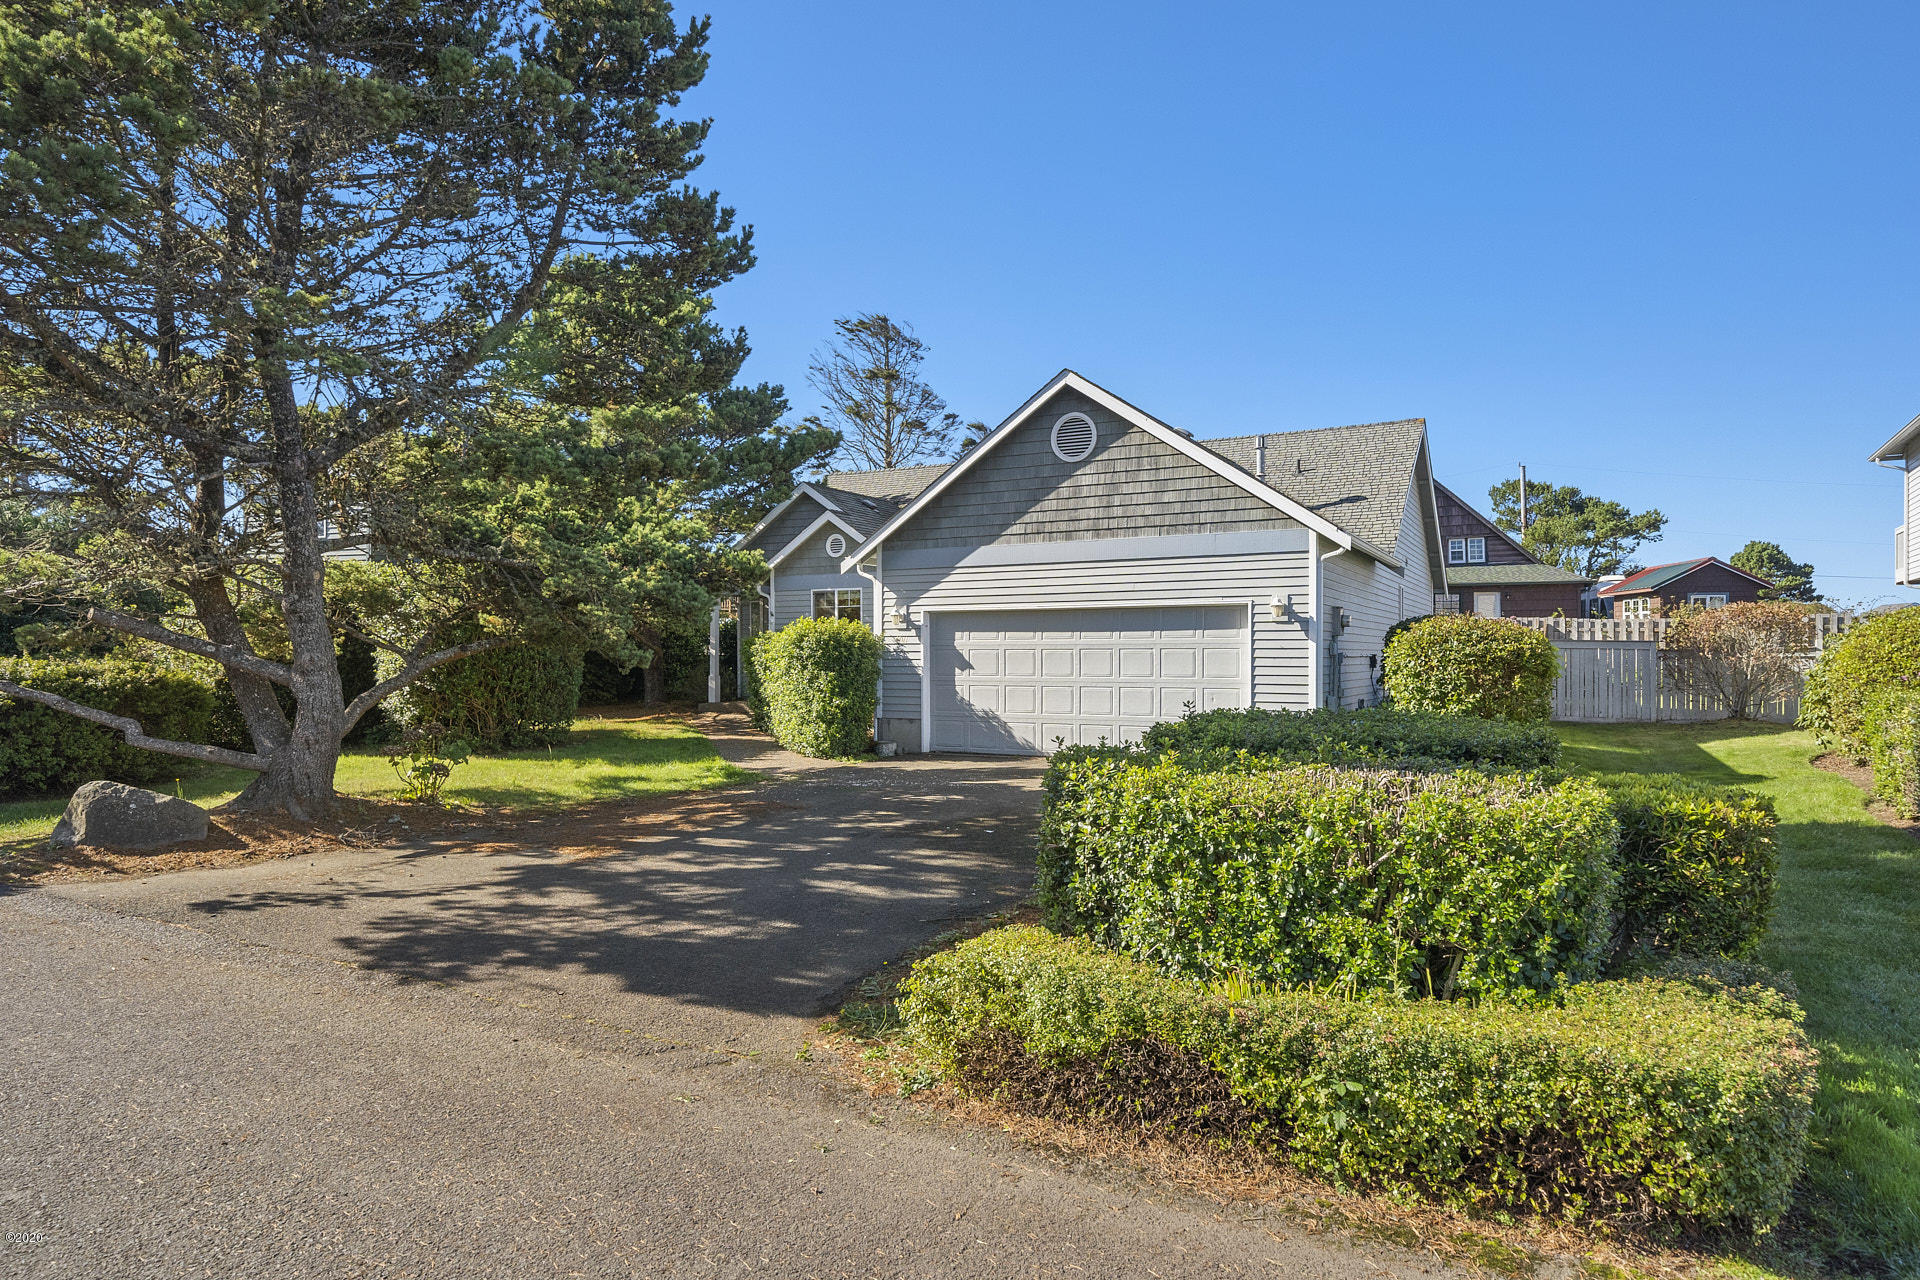 4011 Evergreen Ave, Depoe Bay, OR 97341 - Front of Home